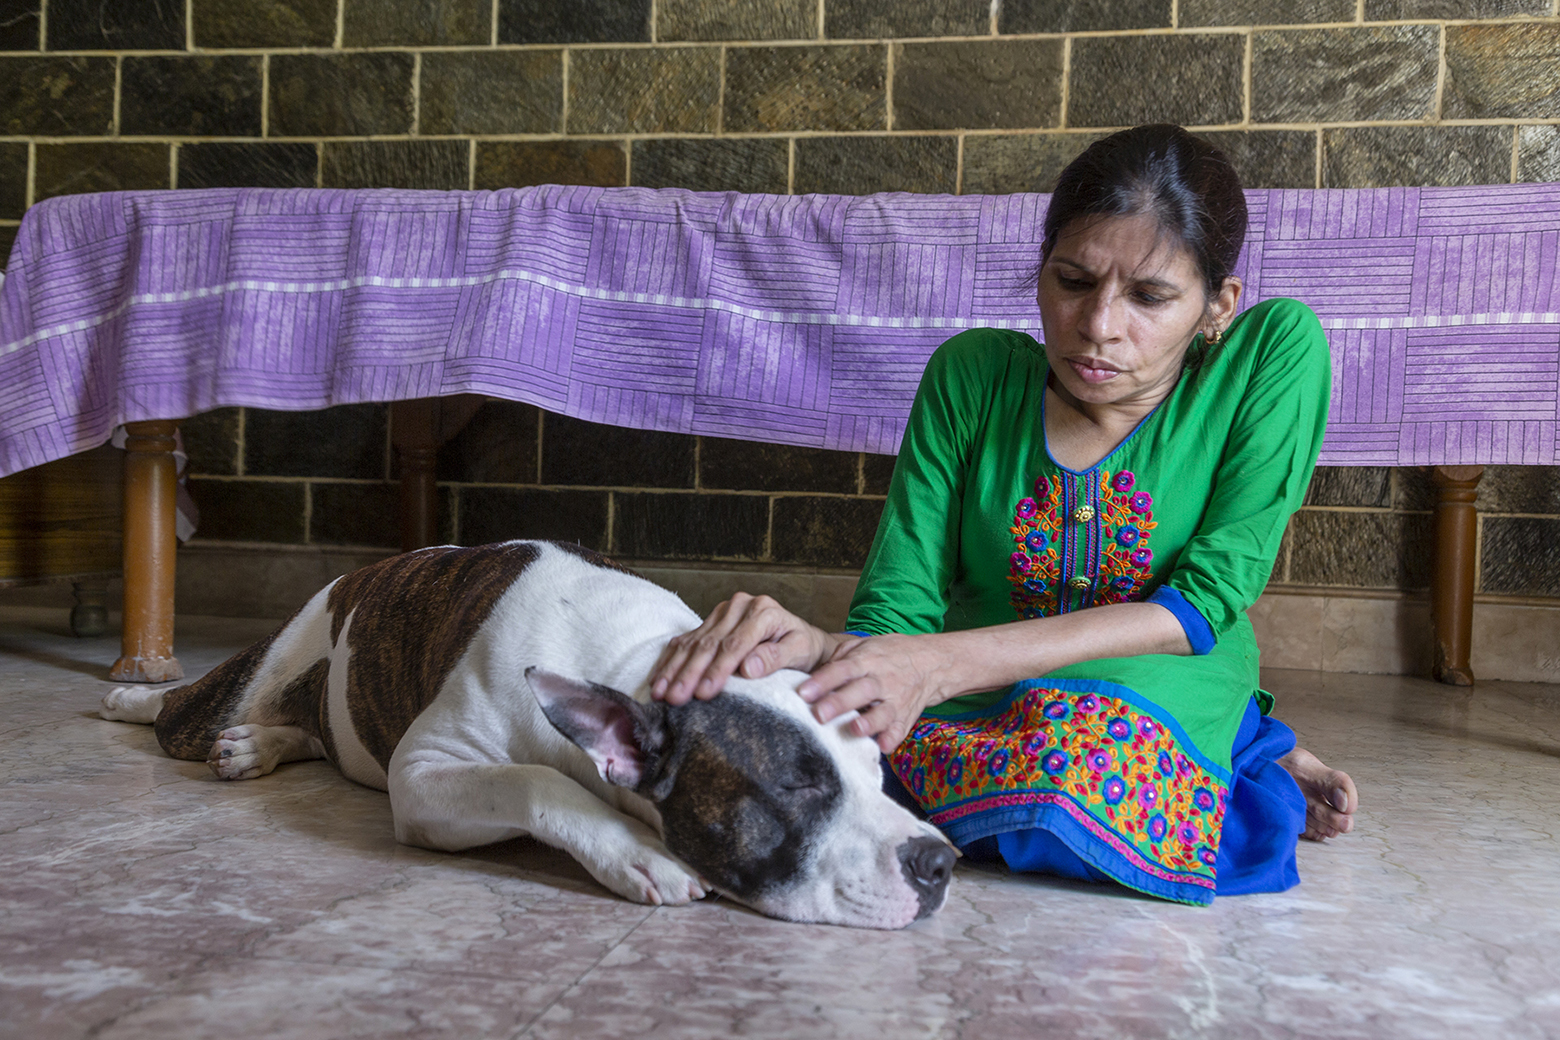 Kavita wearing green kameez and blue salwar is sitting crosslegged on the floor next to Dollar, her chocolate-brown and white dog who is 18 months old. Dollar is lying with his head resting on his paws. Kavita is stroking his head.